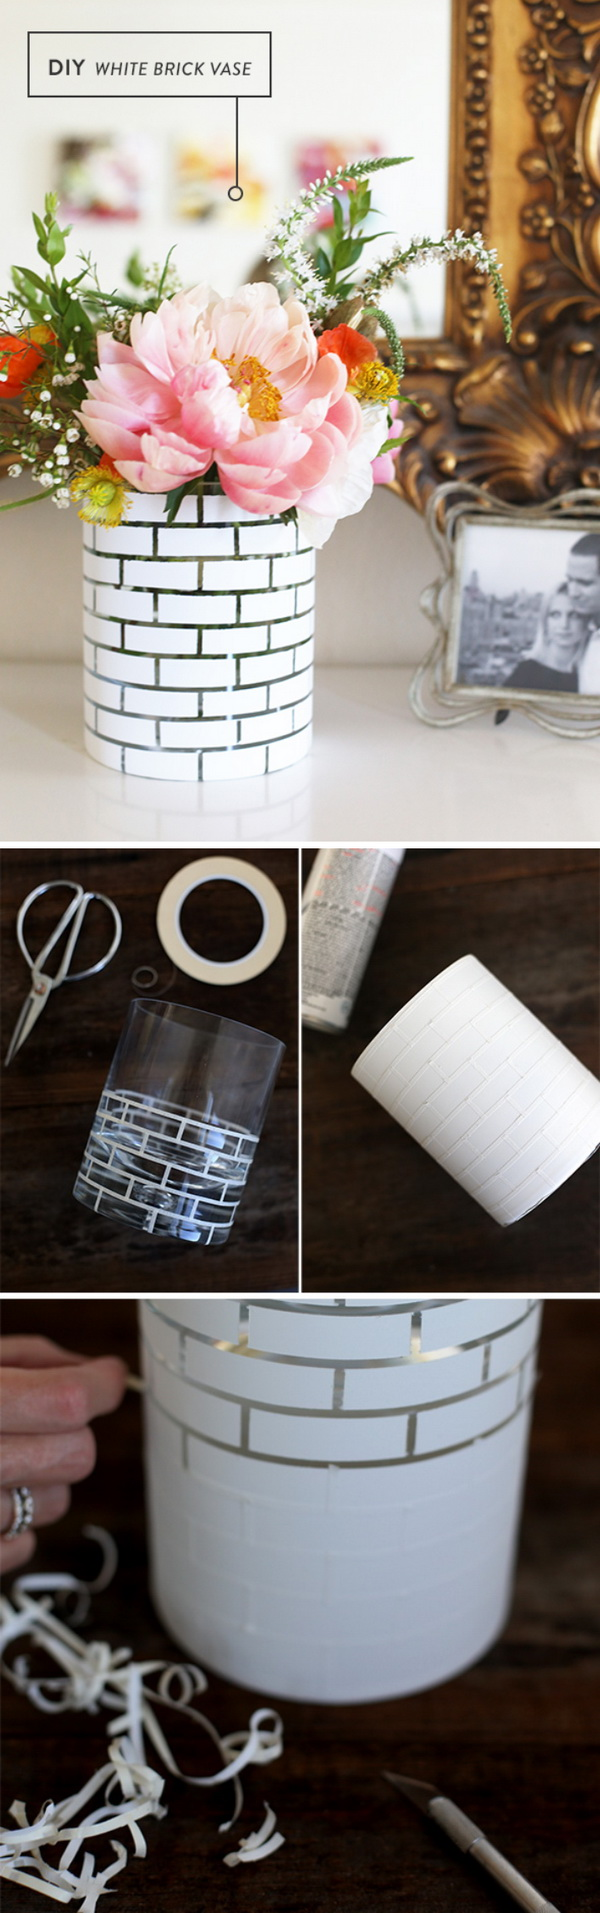 Budget Friendly DIY Home Decor Projects with Tutorials - For